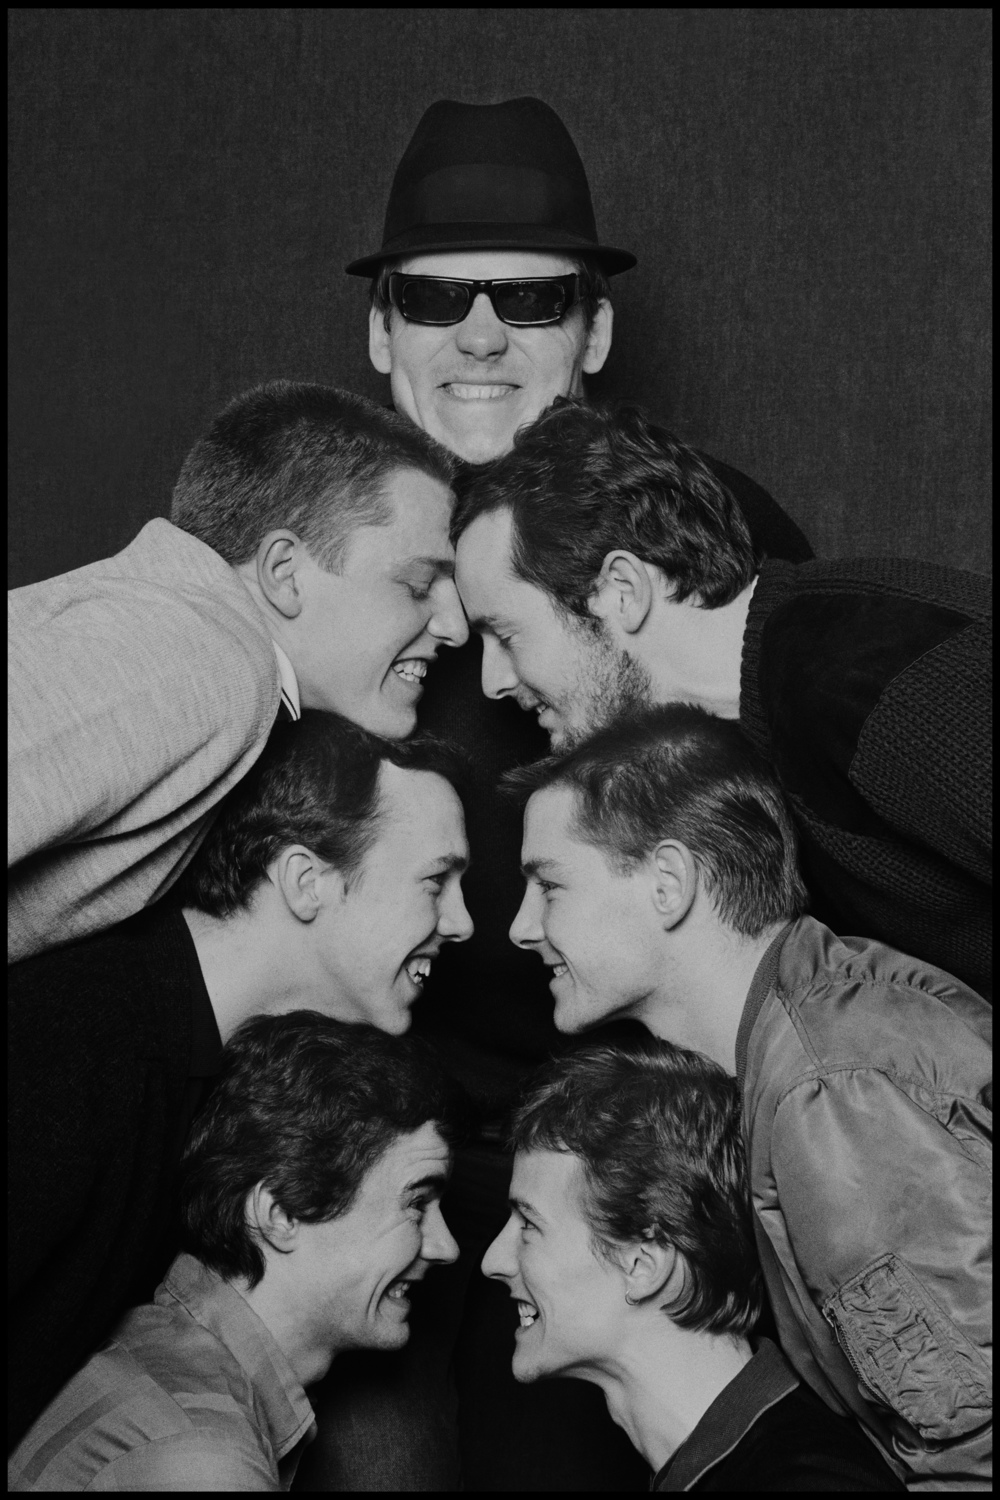 Madness - Glasgow 1980  Because I worked for the Specials I knew the chaps in Madness from the Two Tone Tour, but I took few photos as they had their own favourite photographers and I did not want to intrude.  Then they quit the Tour and were replaced by Dexy's Midnight Runners, another great band from that era, with a leader who had more passion than anyone I had ever met.  When Madness subsequently went out in their own tour I was commissioned to photograph them. To be honest anyone could have done these guys, posing came naturally and they had a cohesion that made for great photos every time. But instead of the action packed photos they were used to doing I decided to simply take a photo of their heads, this picture was done in a couple of minutes backstage in Glasgow.  Not long after this I ended up on a train to Oxford with them, I was just going to their show and had no cameras with me. I got talking to Suggs and Kennedy's assassination came up, he had little recollection of an event that causes everyone from my generation to remember exactly where they were when they heard the news.   Then it dawned on me, Suggs was the first person I knew who was born in the 60's, not the 40's or the 50's. I realized that he was part of the next generation, and at the age of 27 I felt old for the very first time.